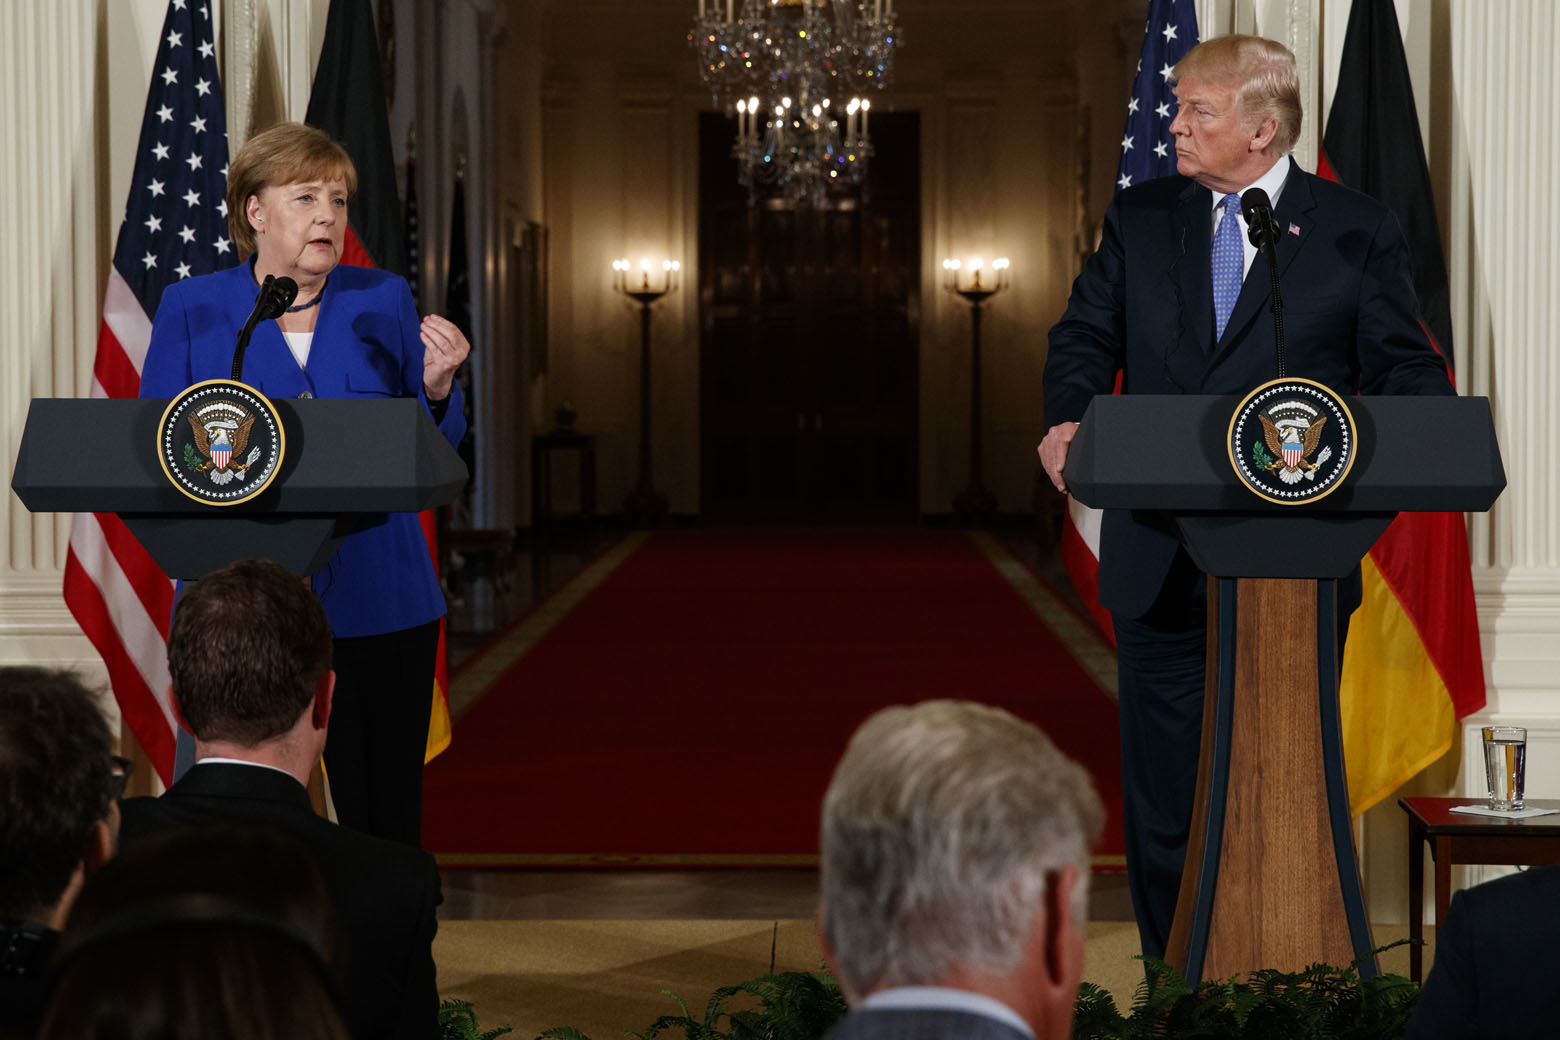 German Chancellor Angela Merkel speaks during a news conference with President Donald Trump in the East Room of the White House, Friday, April 27, 2018, in Washington. (AP Photo/Evan Vucci)